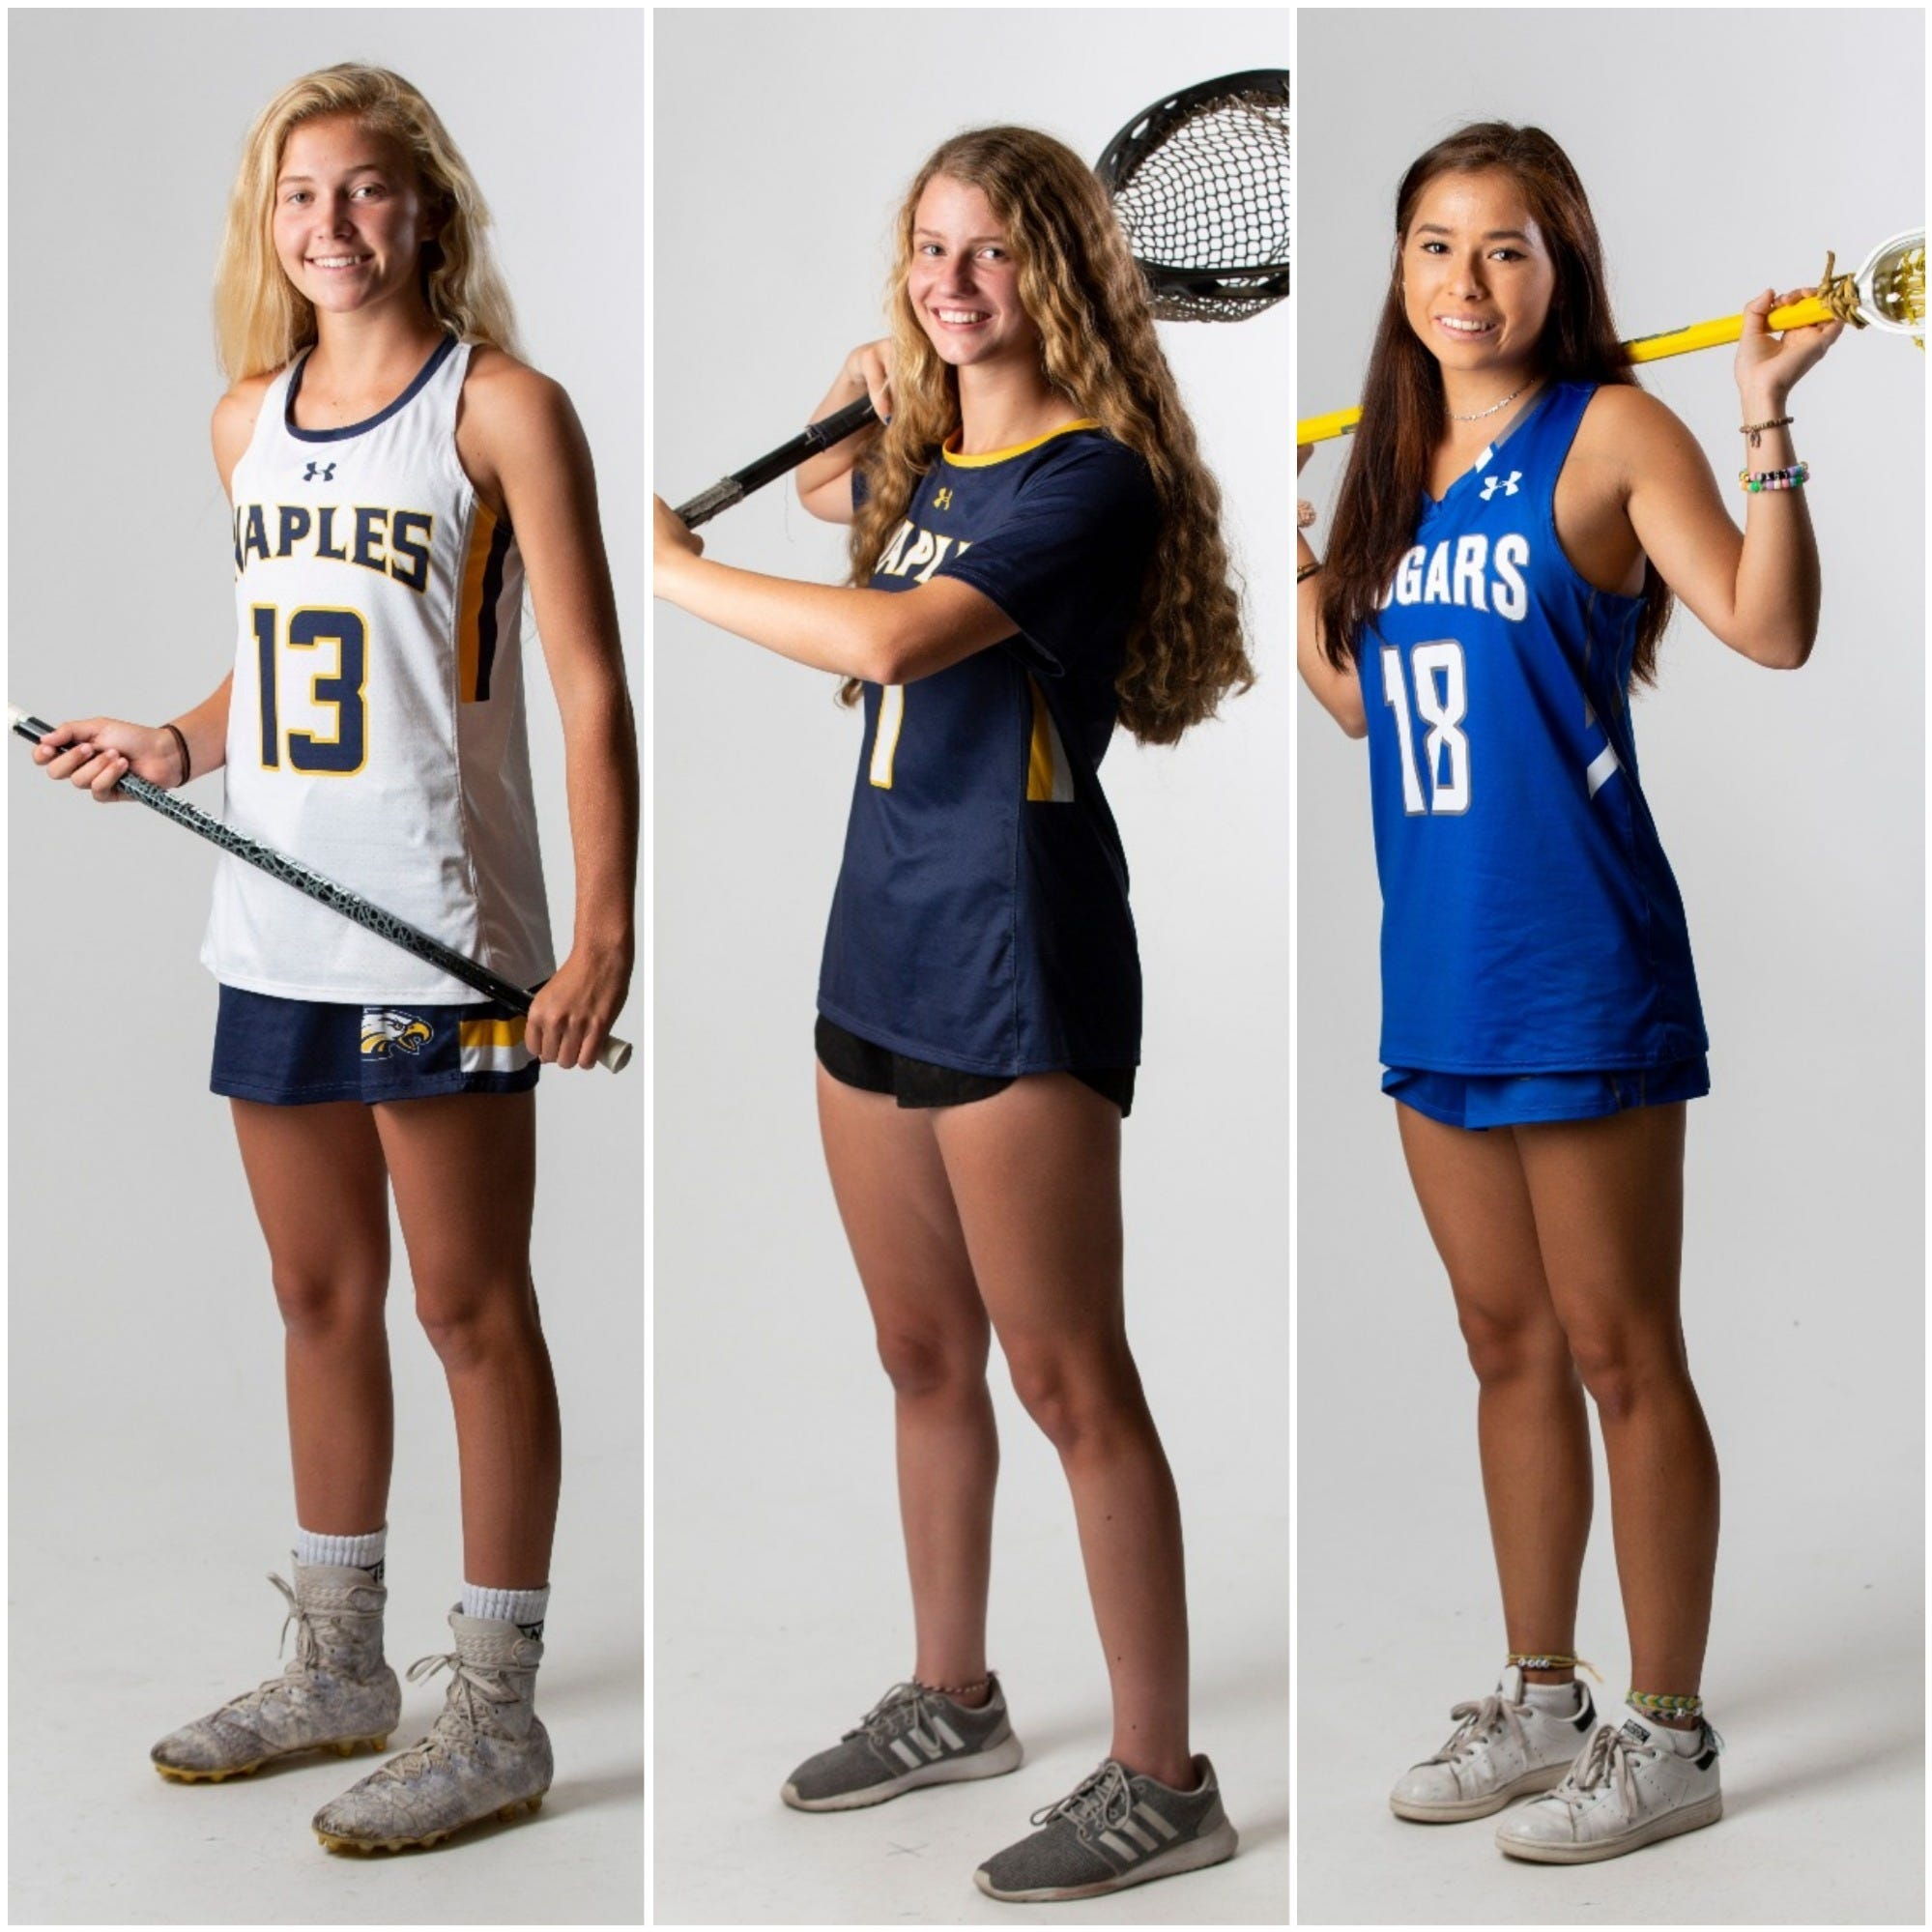 Naples Daily News 2019 Girls Lacrosse All-Area Team